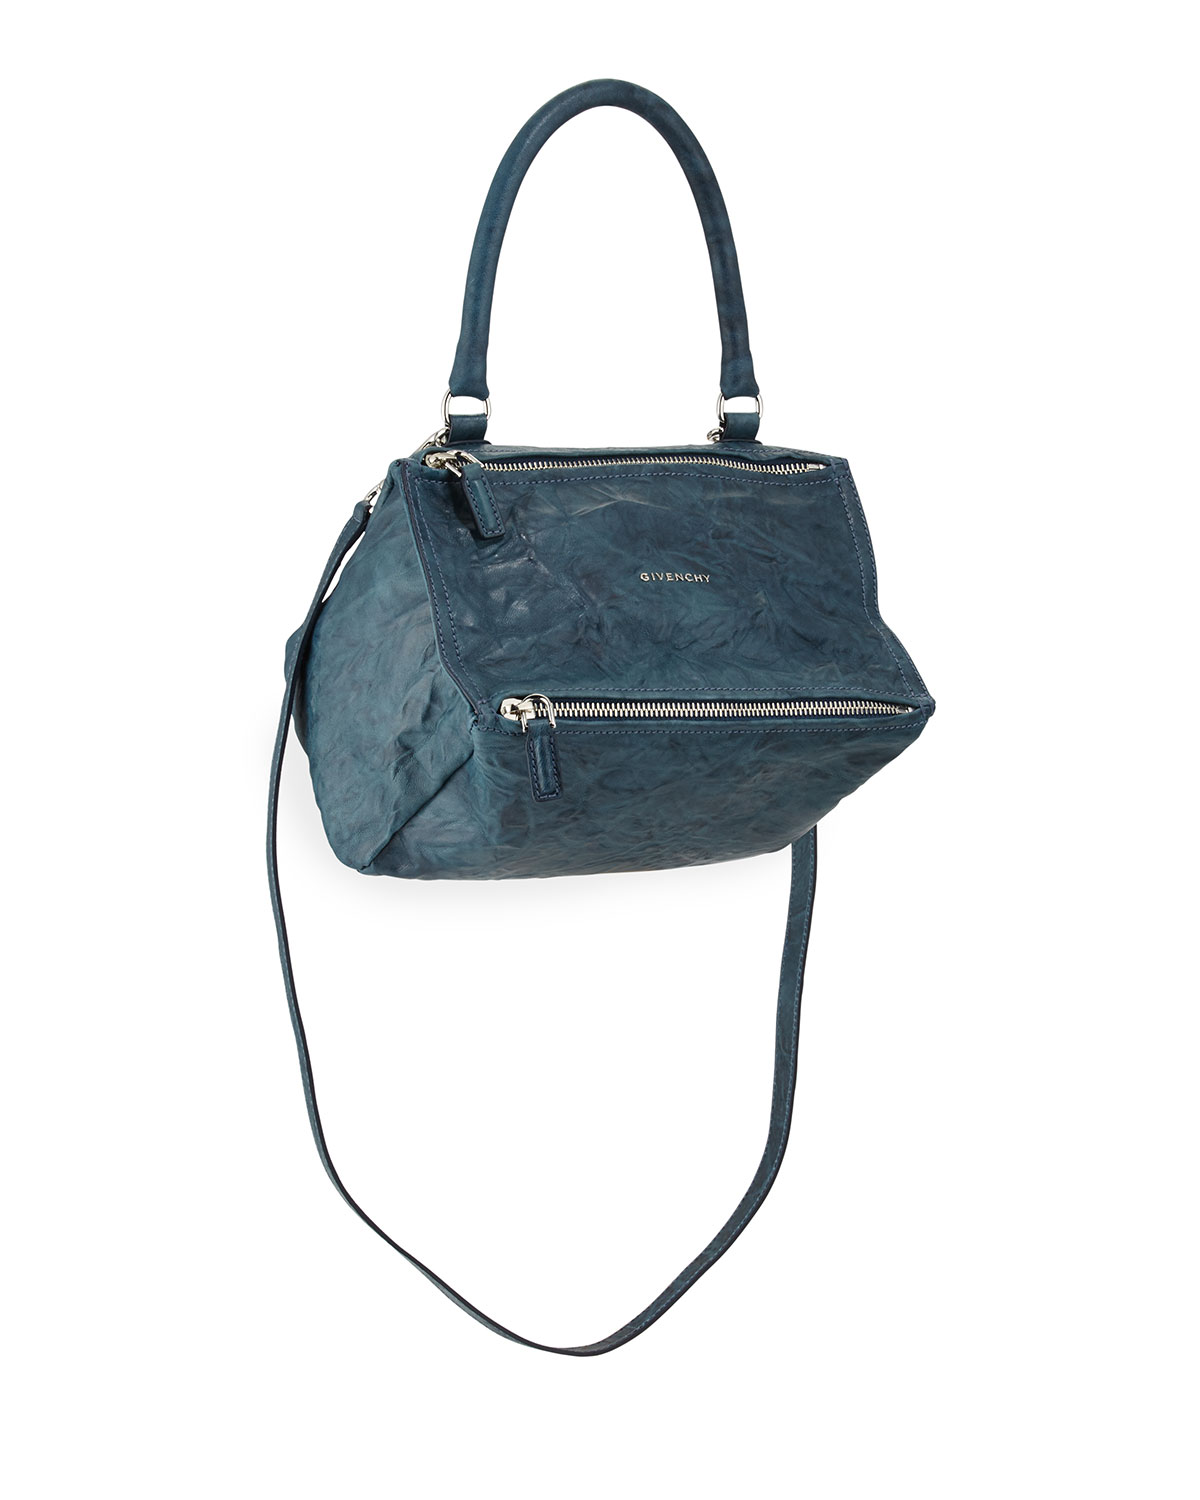 89a5a29a977 Givenchy Pandora Small Satchel Bag, Mineral Blue | Neiman Marcus